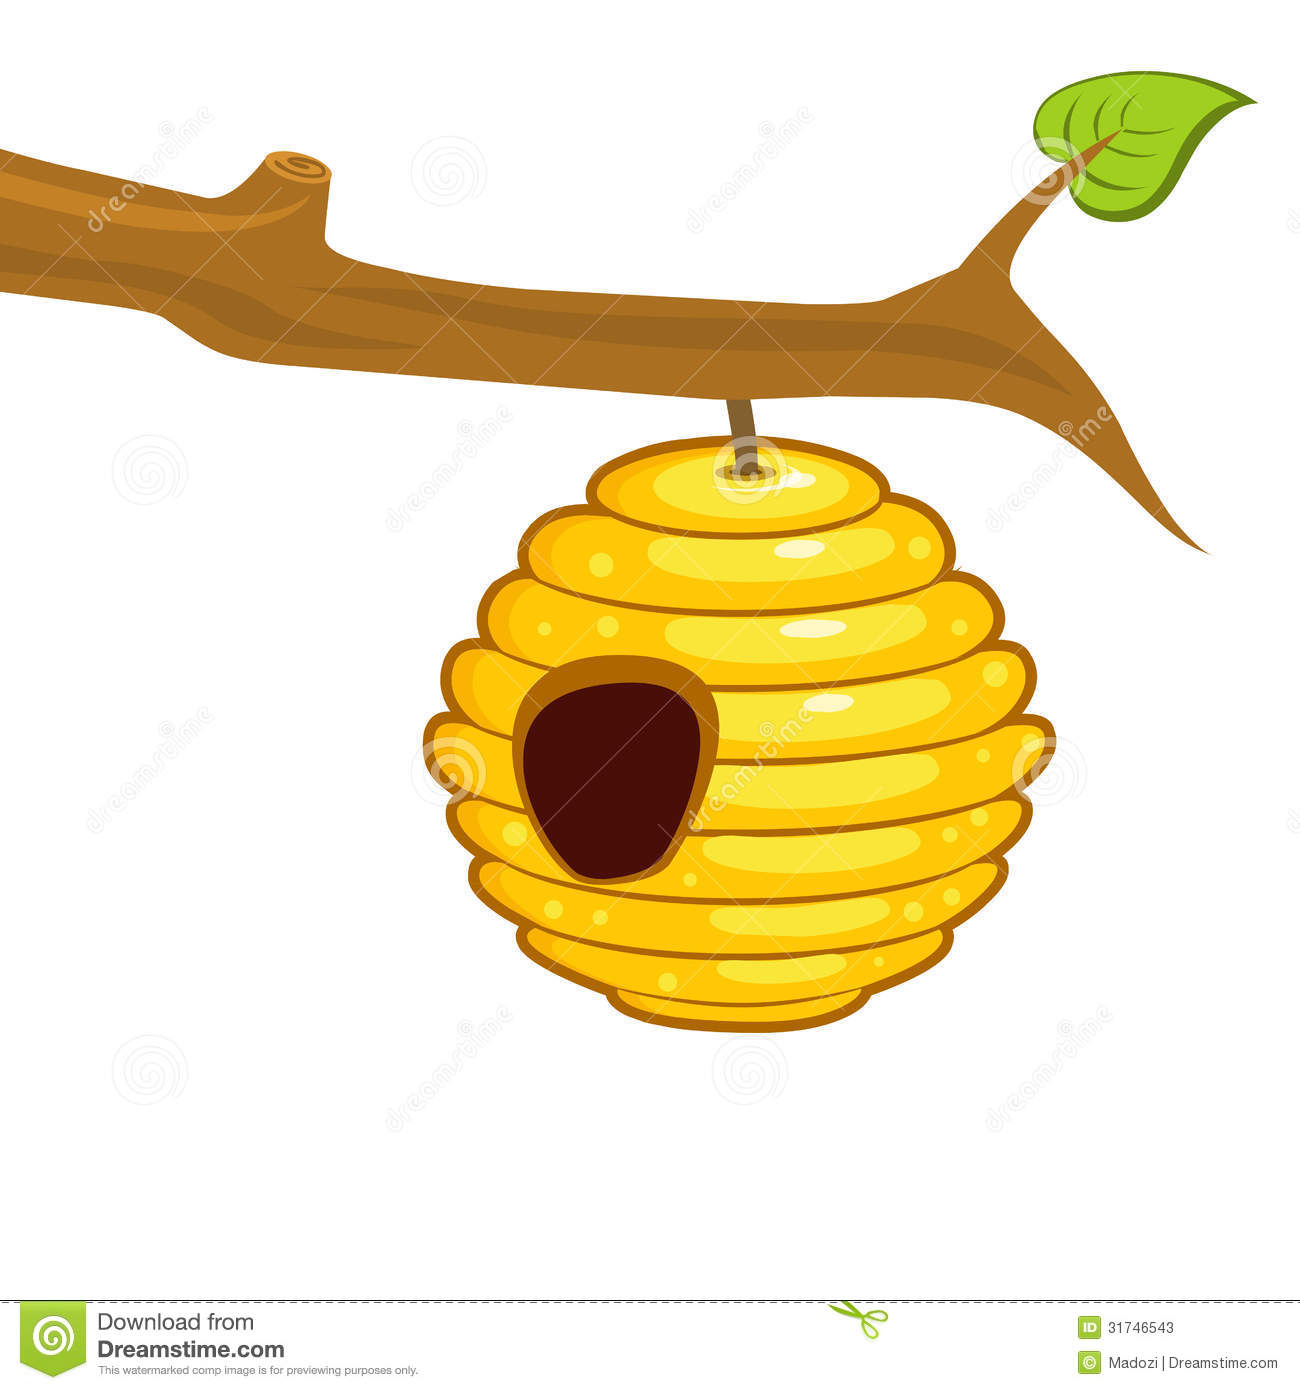 Beehive Hanging From A Branch Stock Phot-Beehive Hanging From A Branch Stock Photos Image 31746543-11